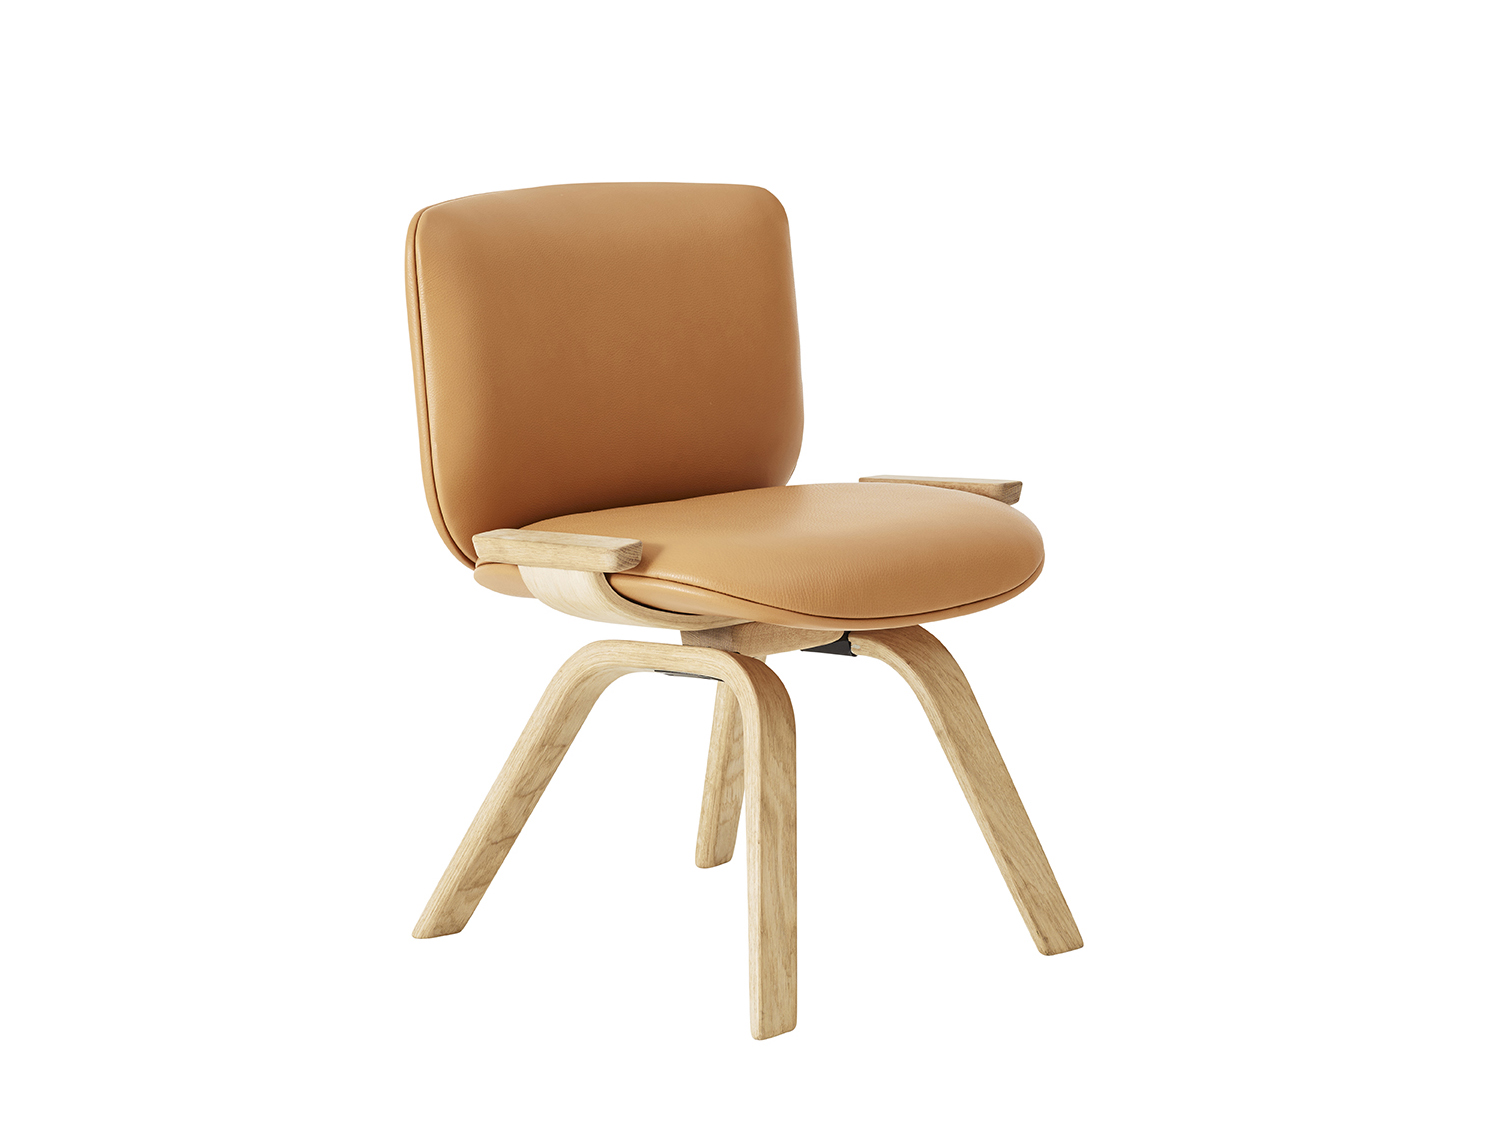 Guest chair for Swedese - Exhibiting at Swedese, Milan Furniture Fair, Hall 16, Stand E26